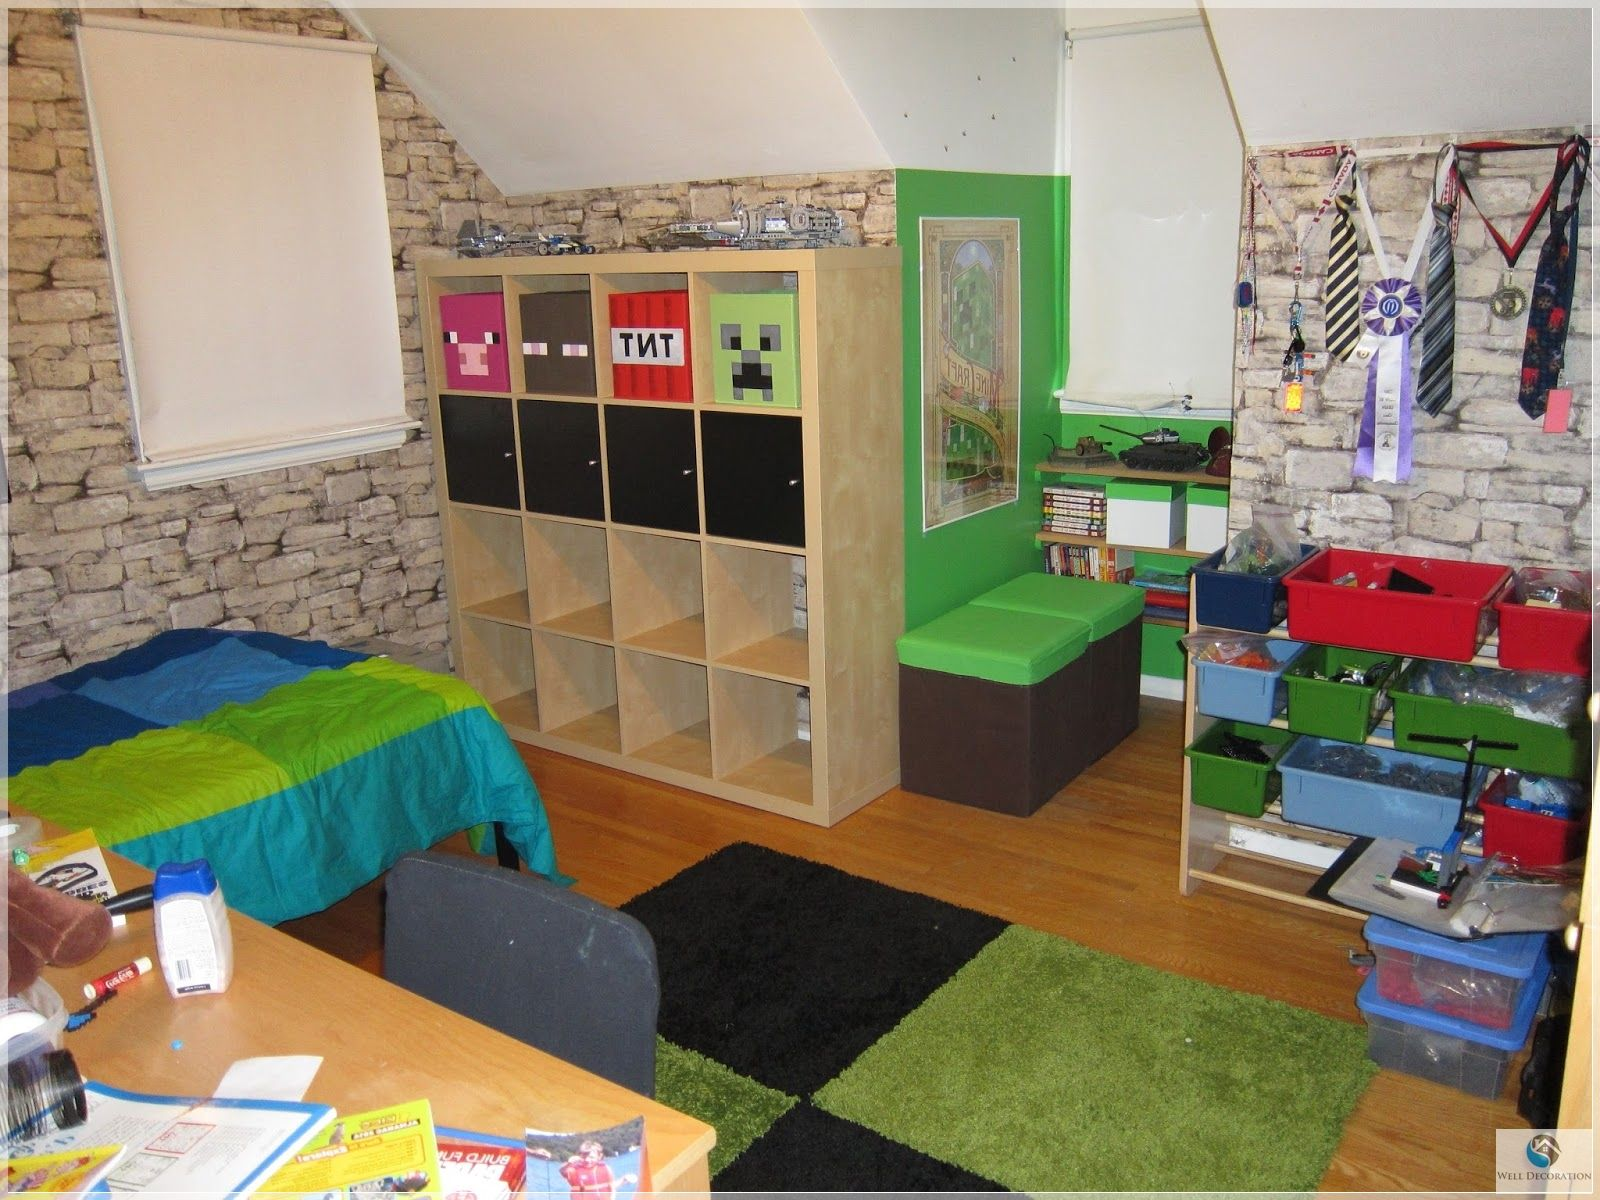 Cool Bedroom Designs Minecraft themed bedroom 3 decorating your kid's room with a minecraft theme